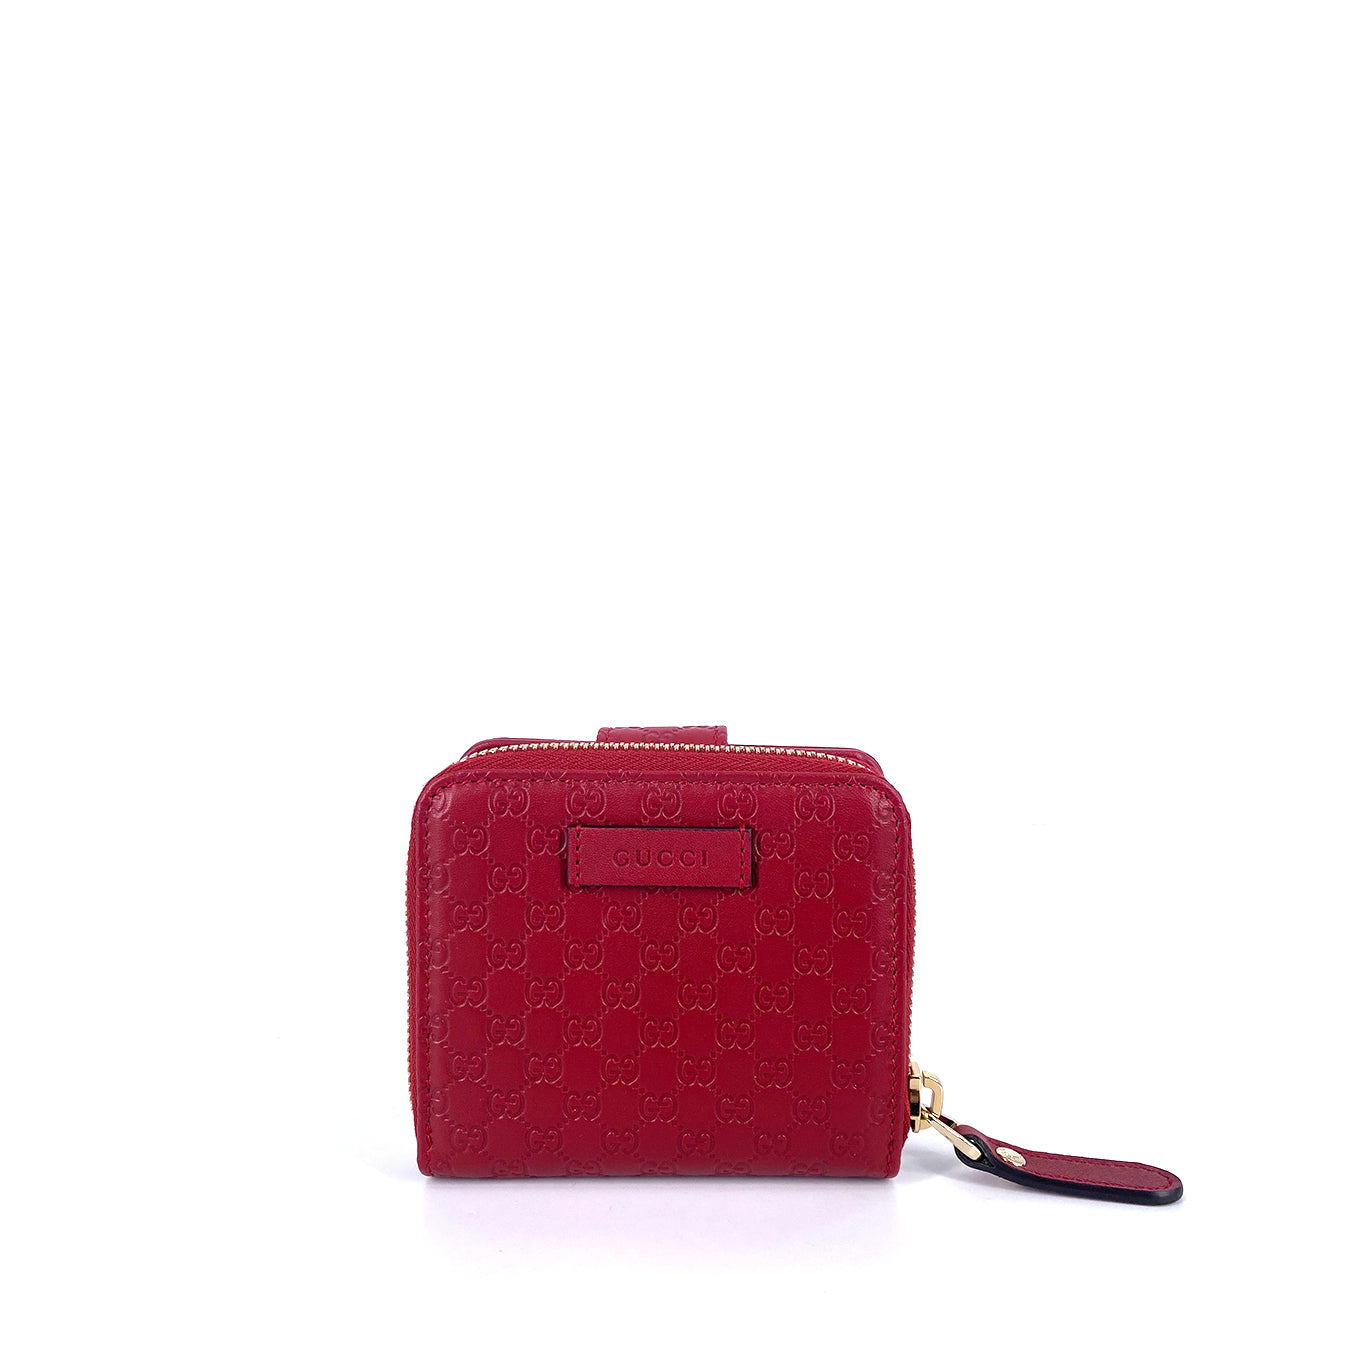 Gucci Microguccissima GG Logo Red Flap Zip Leather Wallet